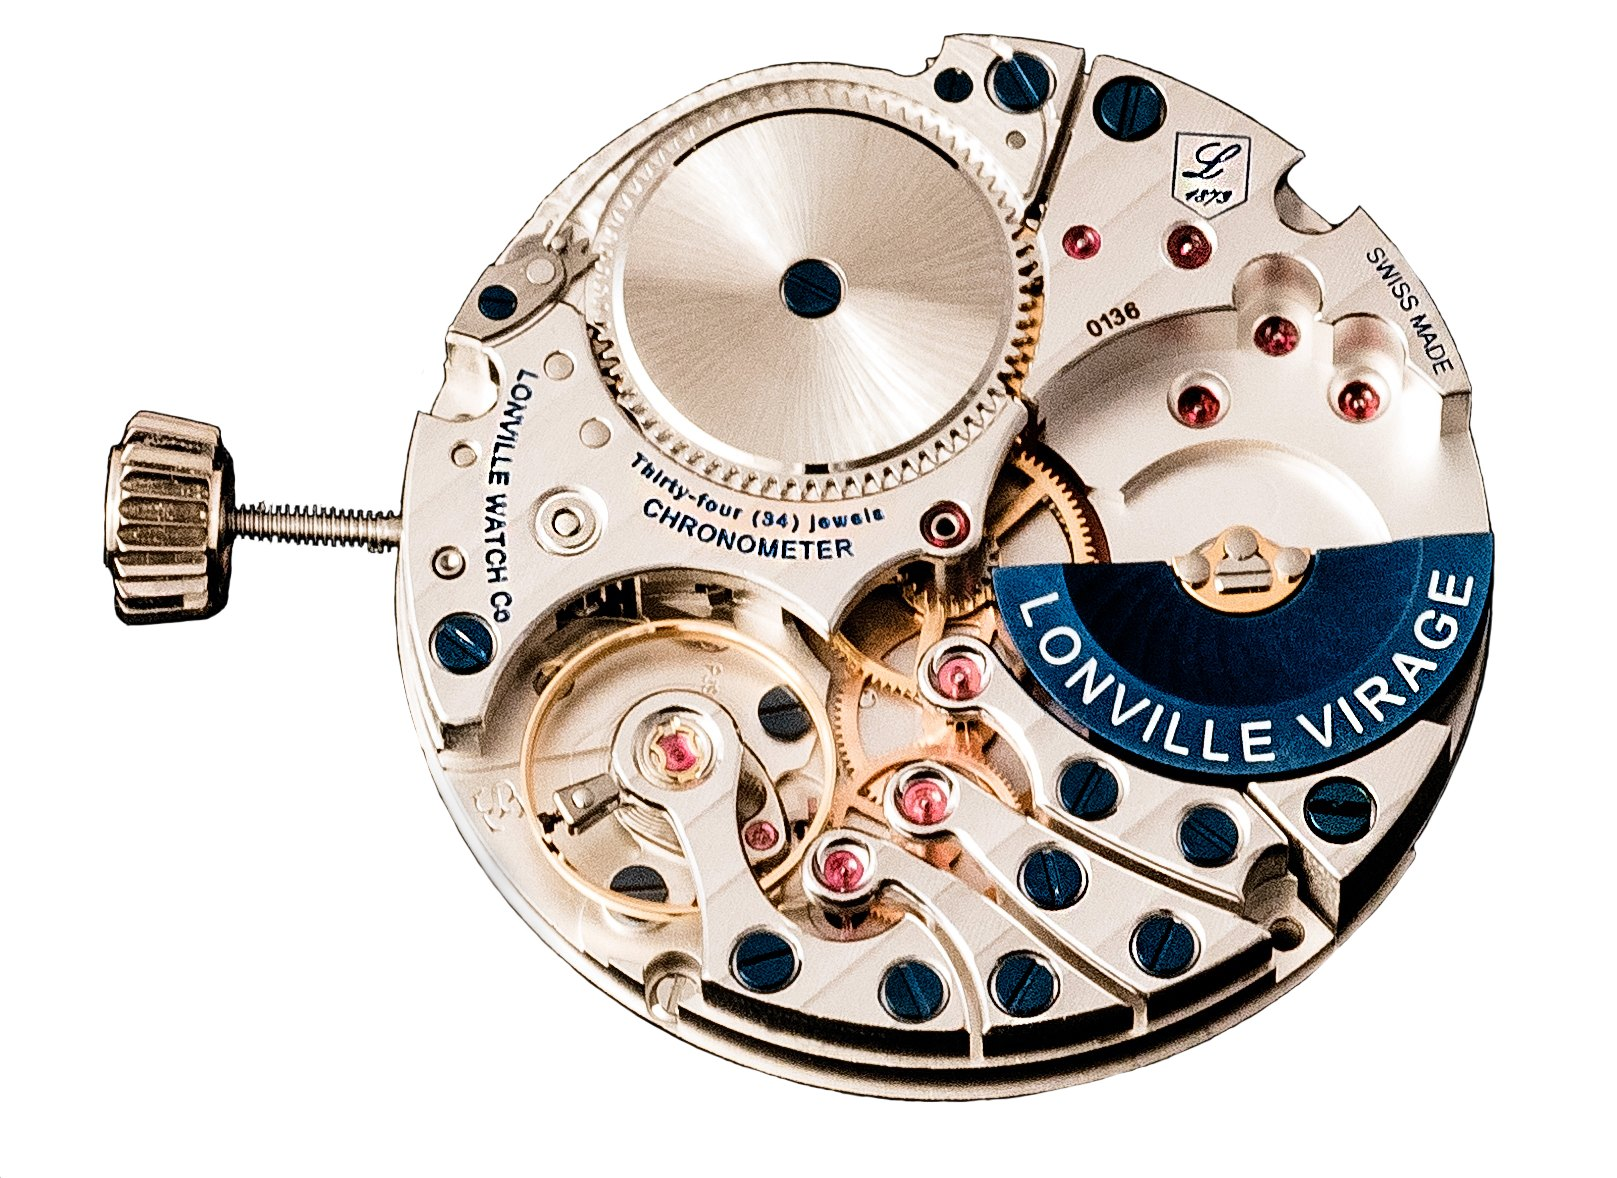 Lonville watch movement with micro rotor